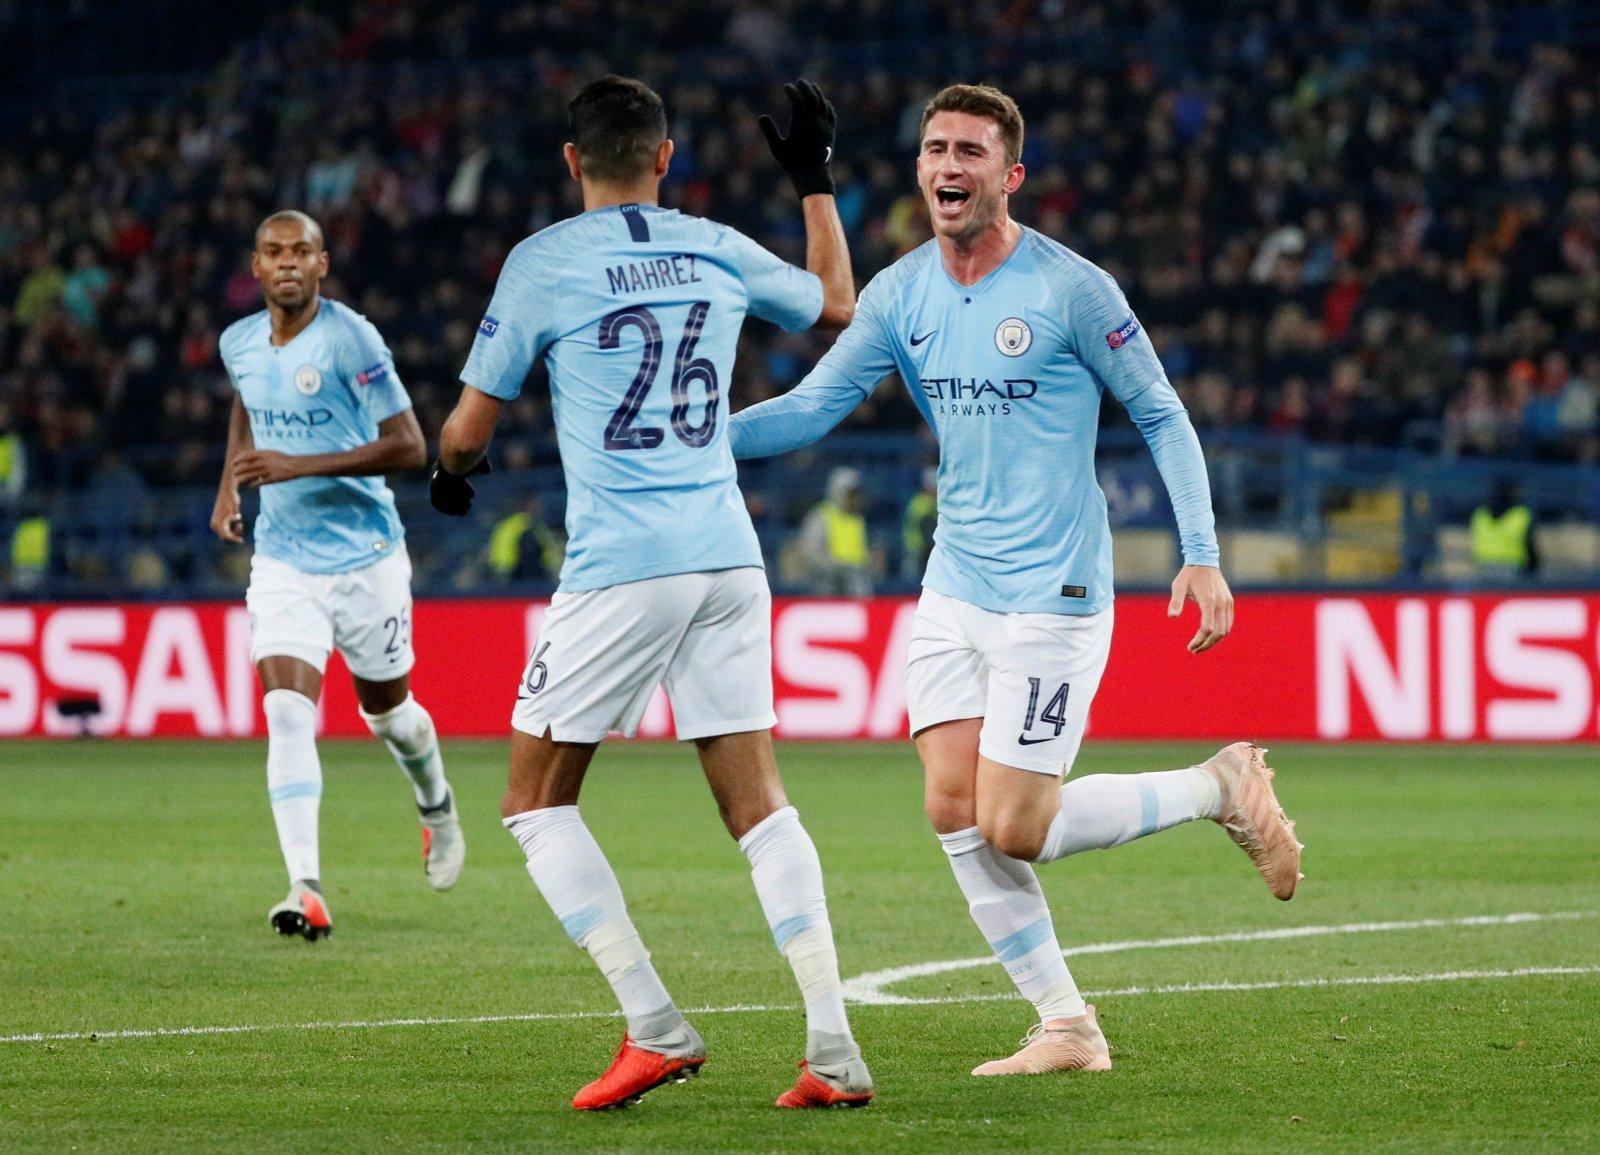 Manchester City: Aymeric Laporte to discover extent of knee injury after scans